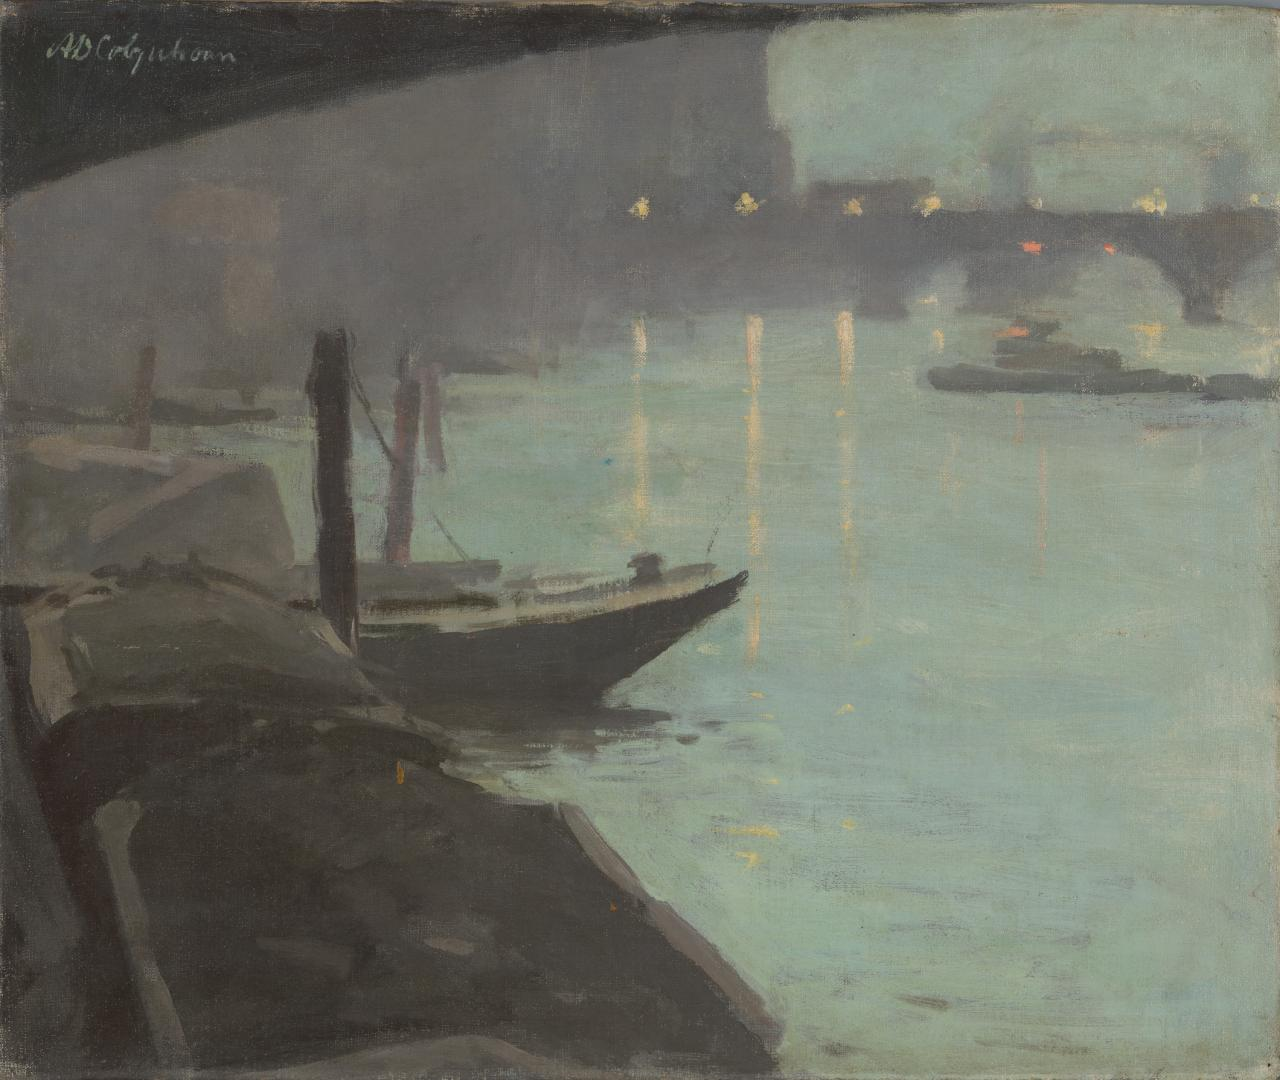 Thames, evening